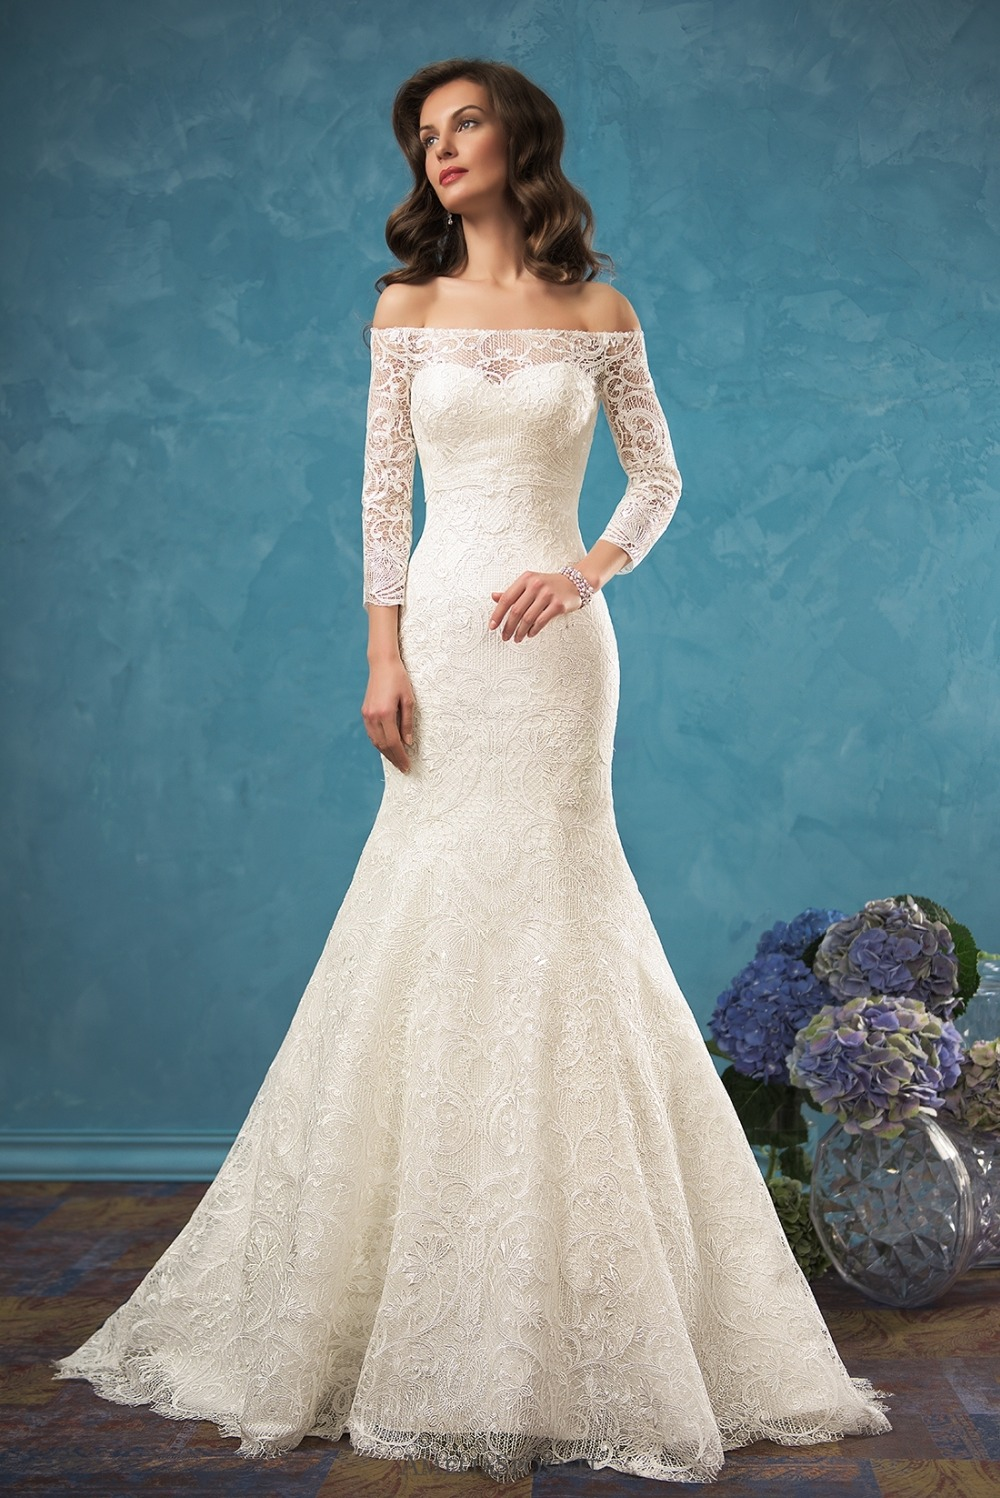 Awesome Affordable Bridal Gown Designers Gift - All Wedding Dresses ...